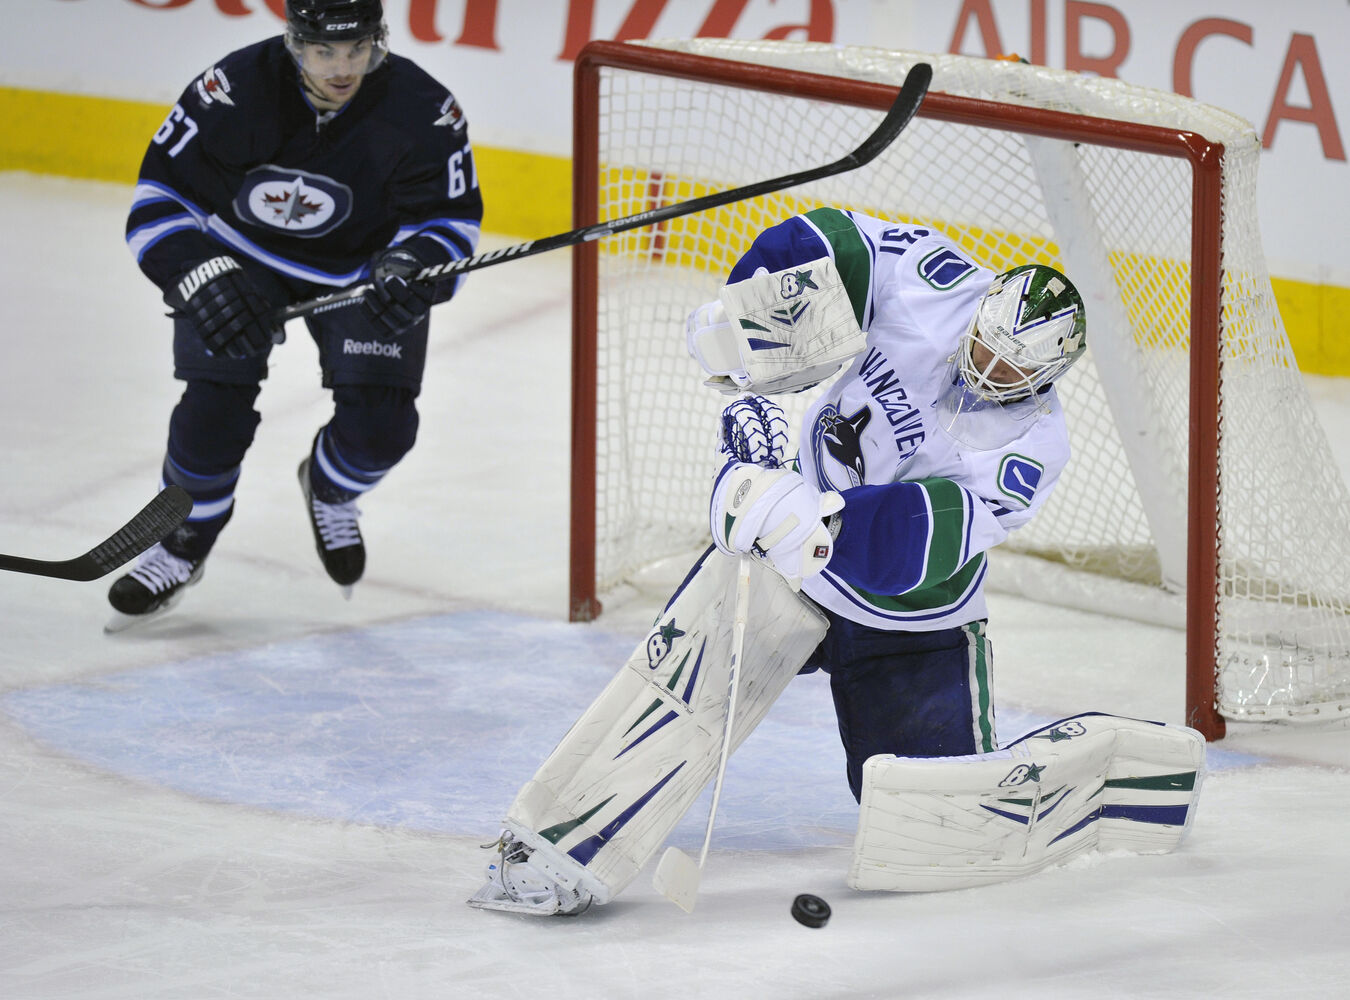 Winnipeg Jets' Michael Frolik runs at the net as Vancouver Canucks' goaltender Eddie Lack  clears the puck during the first period of Friday's game.